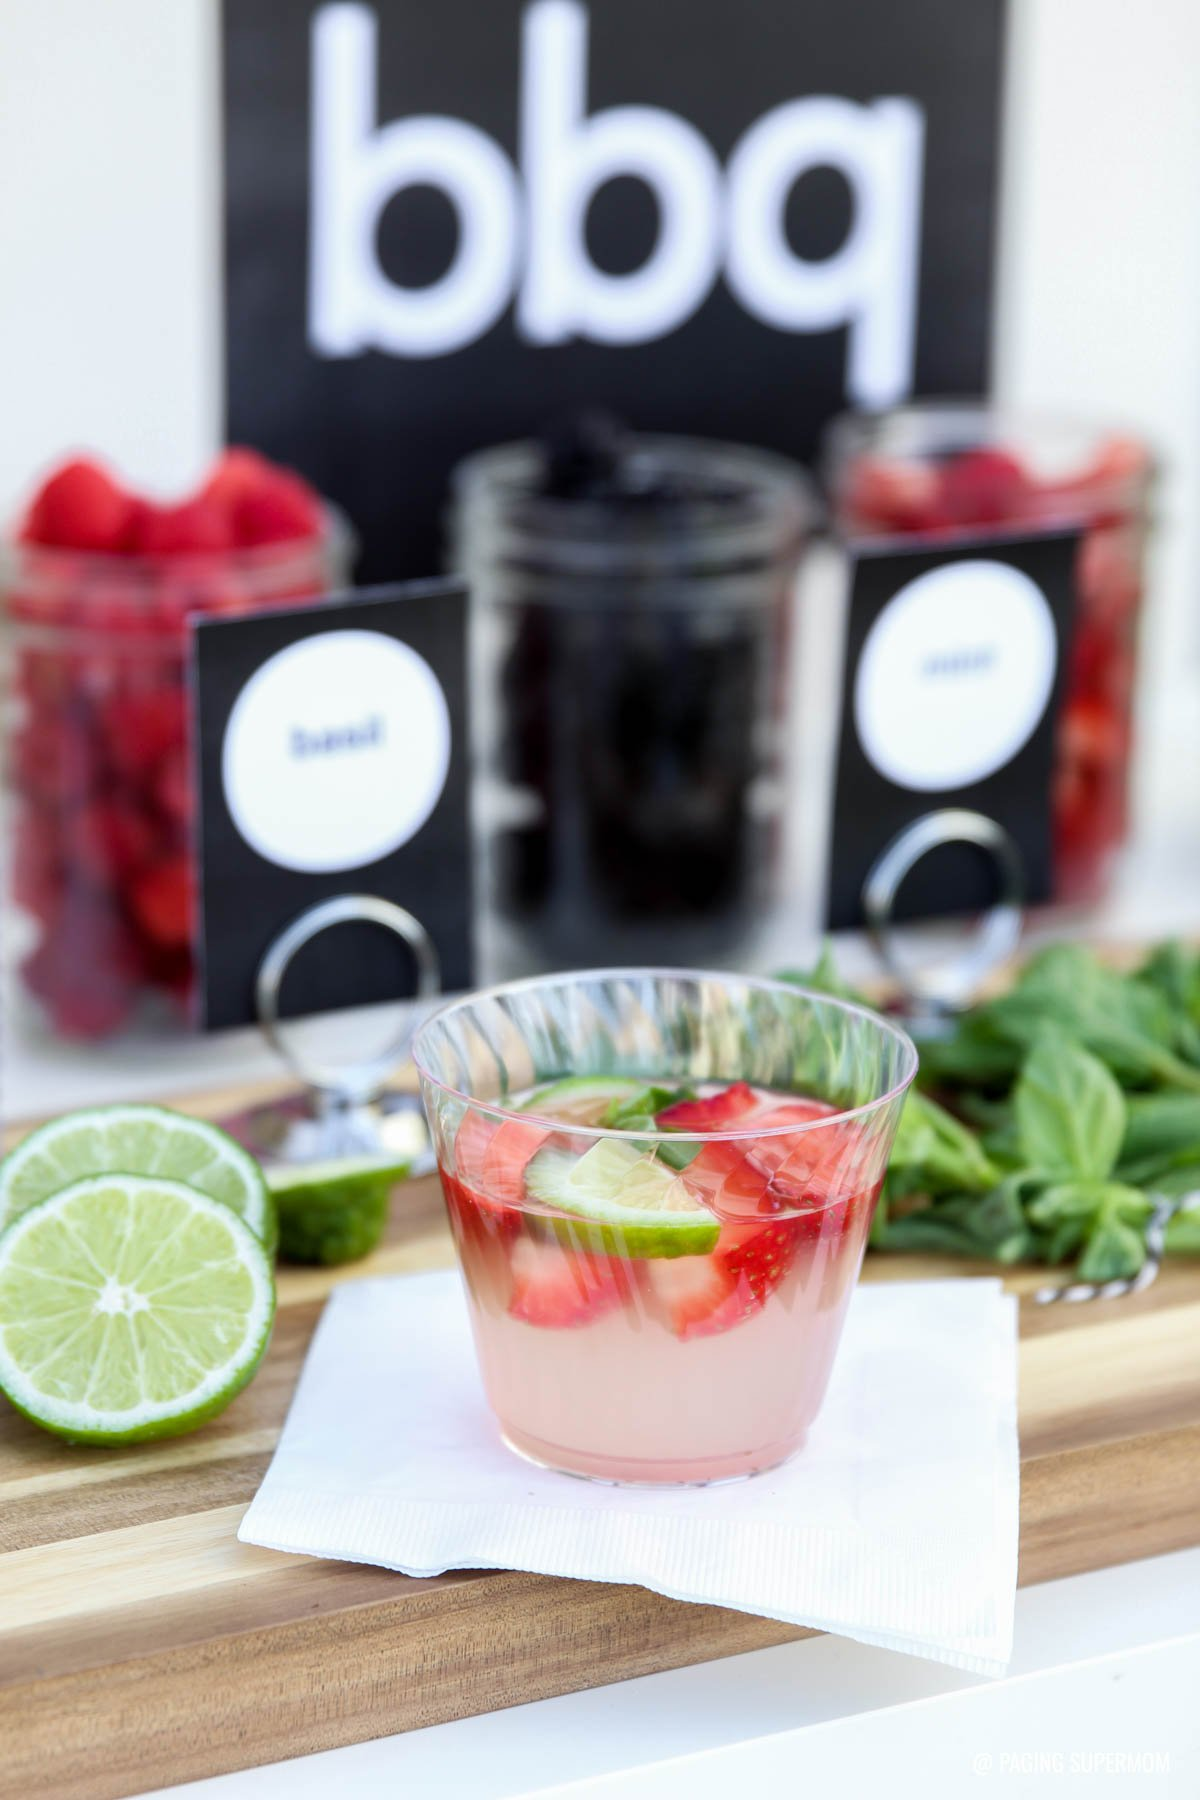 Love this Lemonade Bar - the black & white decor is modern and classy. Great ideas for mixing your own gourmet Lemonade. This Gourmet Strawberry Basil Lemonade looks AMAZING! I love this whole gourmet Lemonade Bar idea -- FREE printables and recipes @PagingSupermom